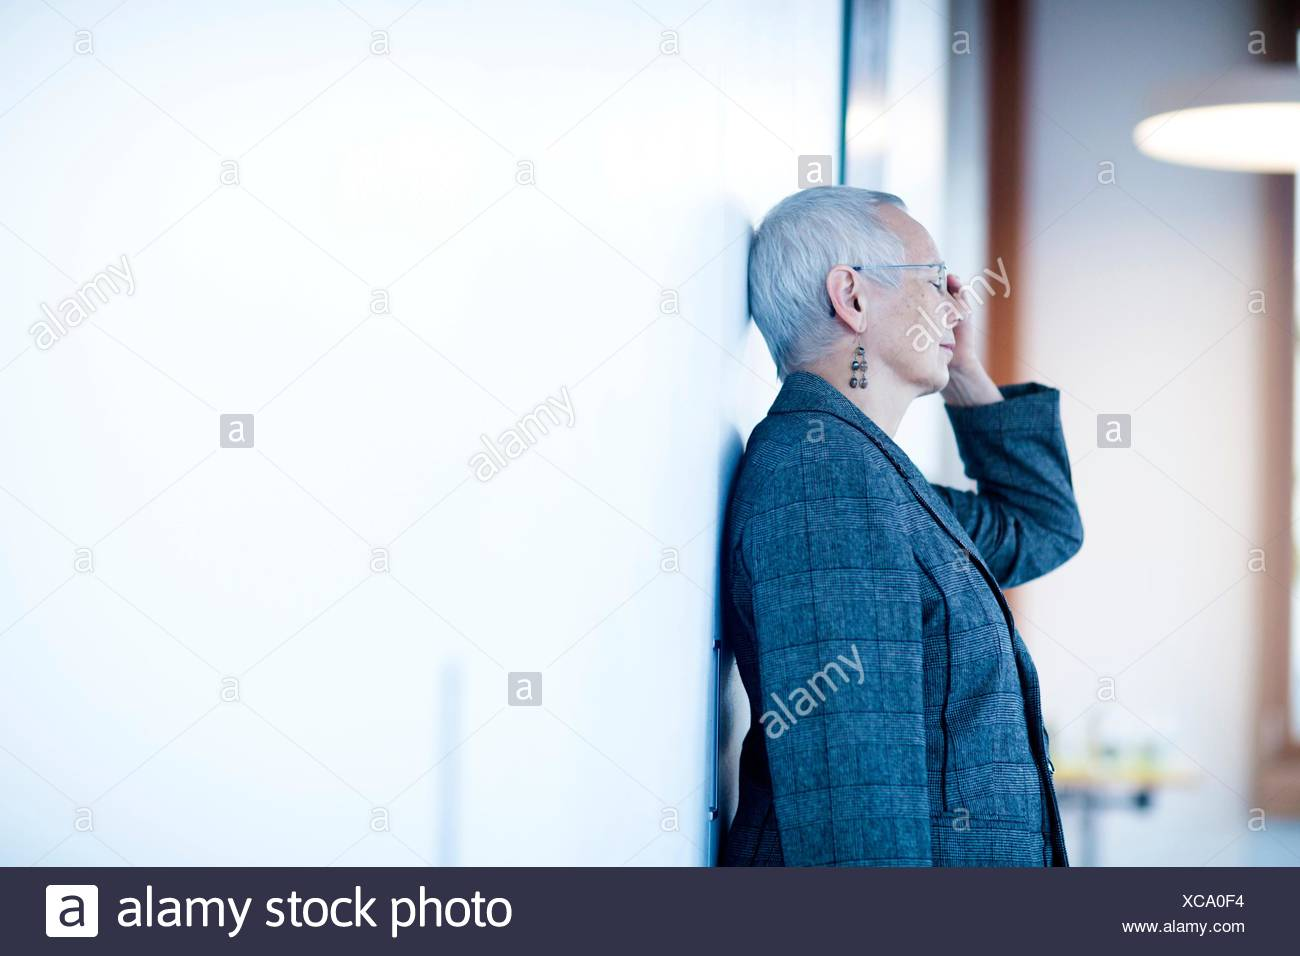 Side view of mature woman leaning against wall, hand on head, eyes closed looking stressed - Stock Image